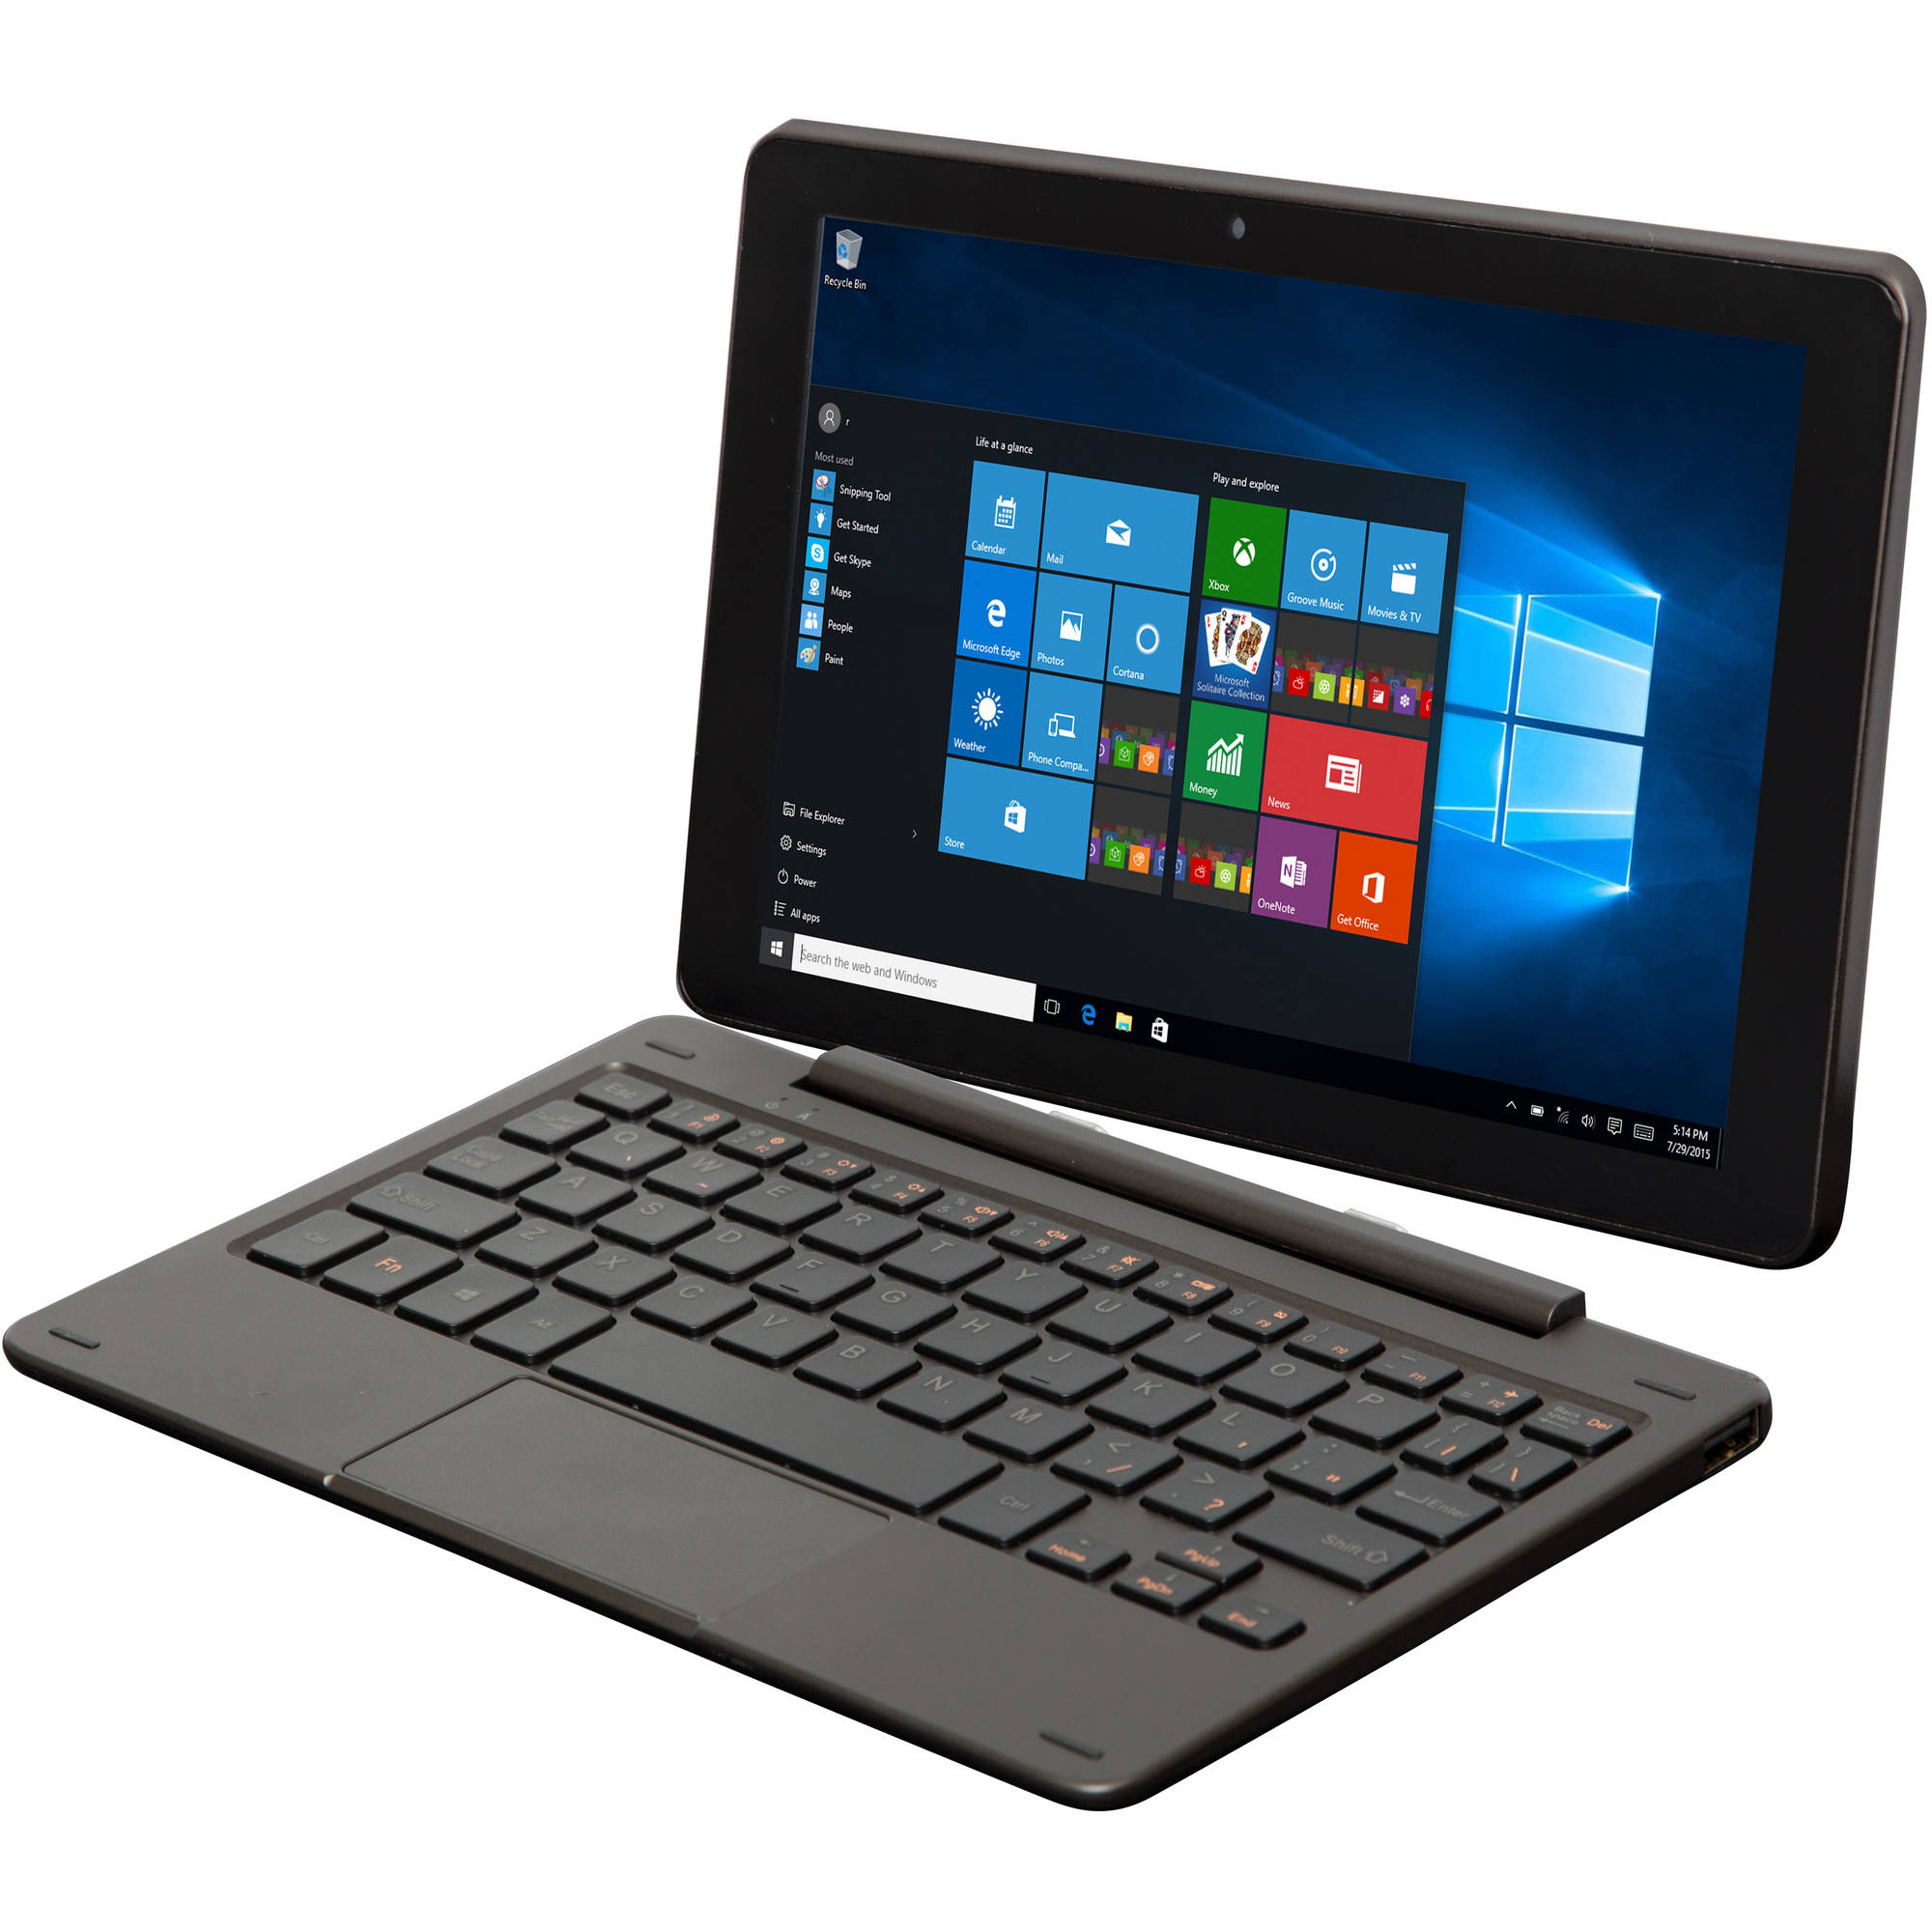 "Nextbook Flexx 8.9"" 2-in-1 Tablet 32GB Intel Atom Z3735G Quad-Core Processor Windows 10"